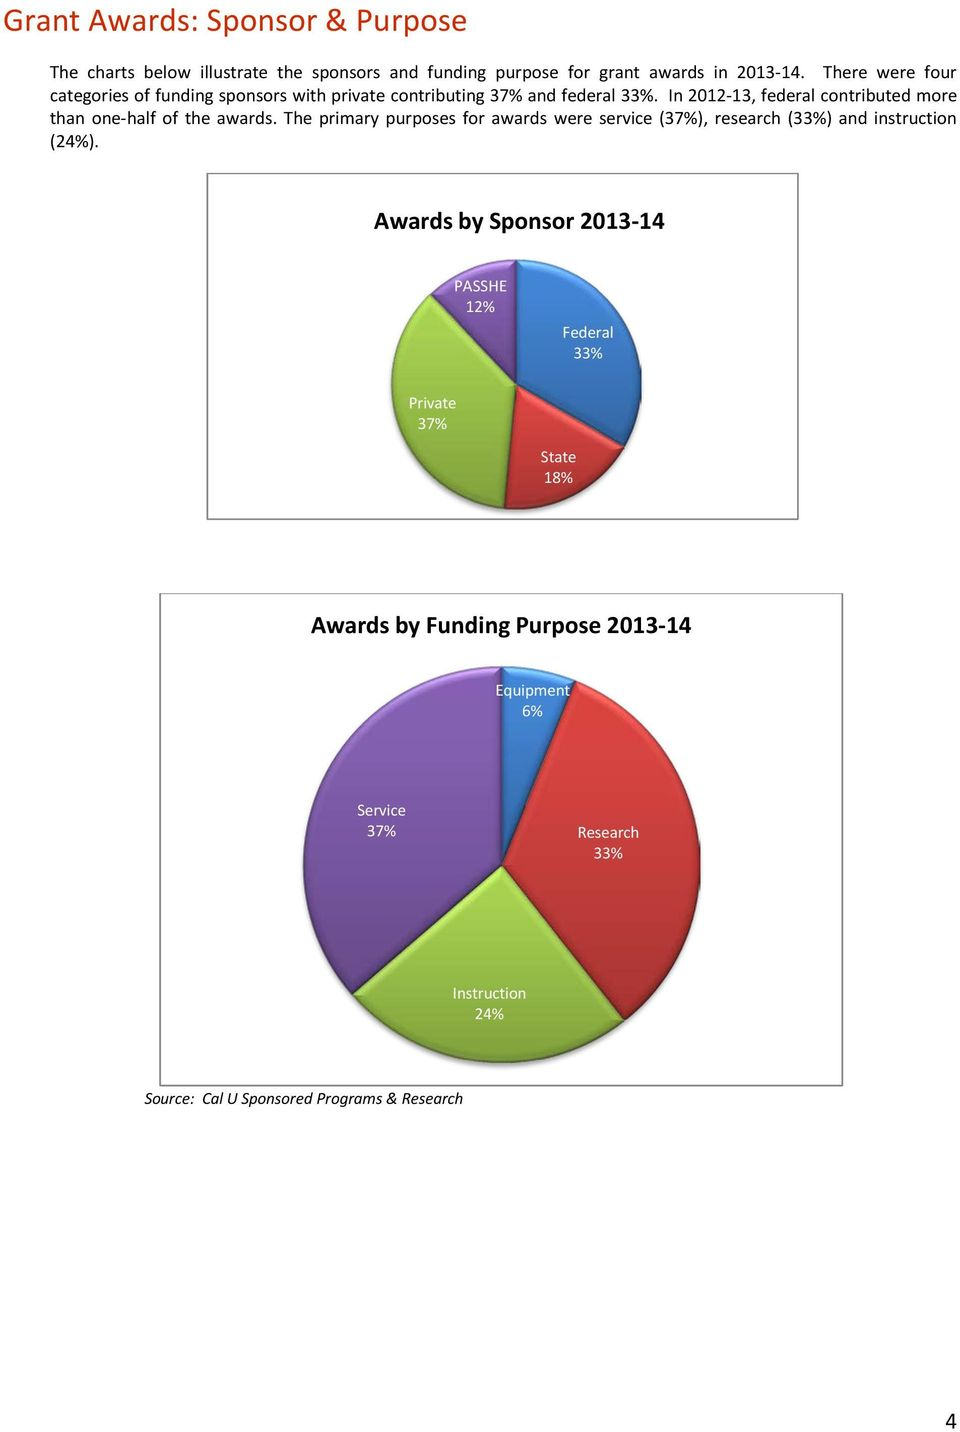 In 2012-13, federal contributed more than one-half of the awards.